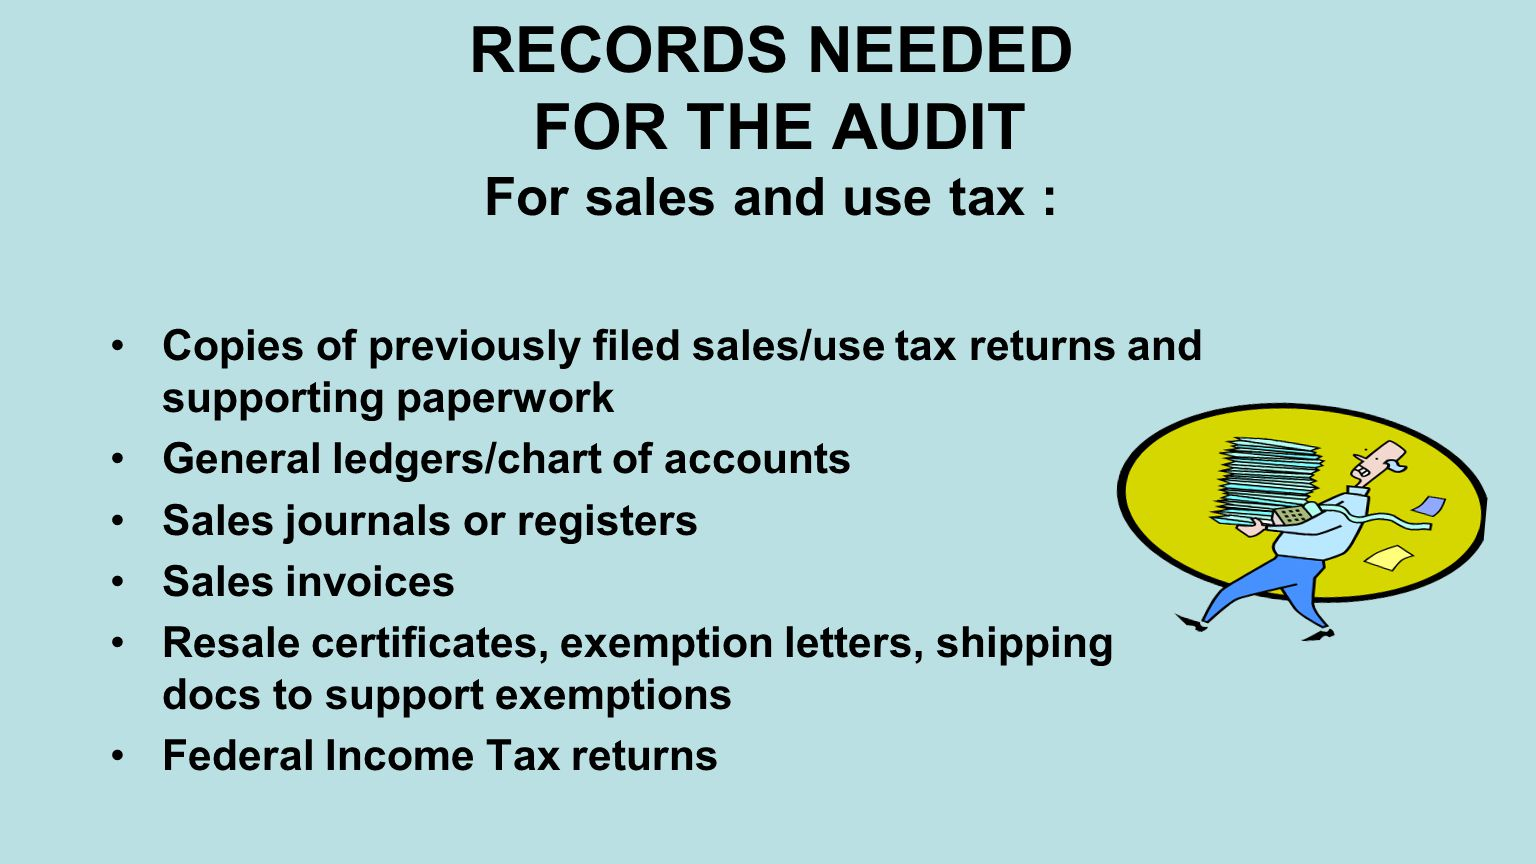 State of nevada department of taxation the audit ppt download 7 records needed for the audit for sales and use tax 1betcityfo Choice Image